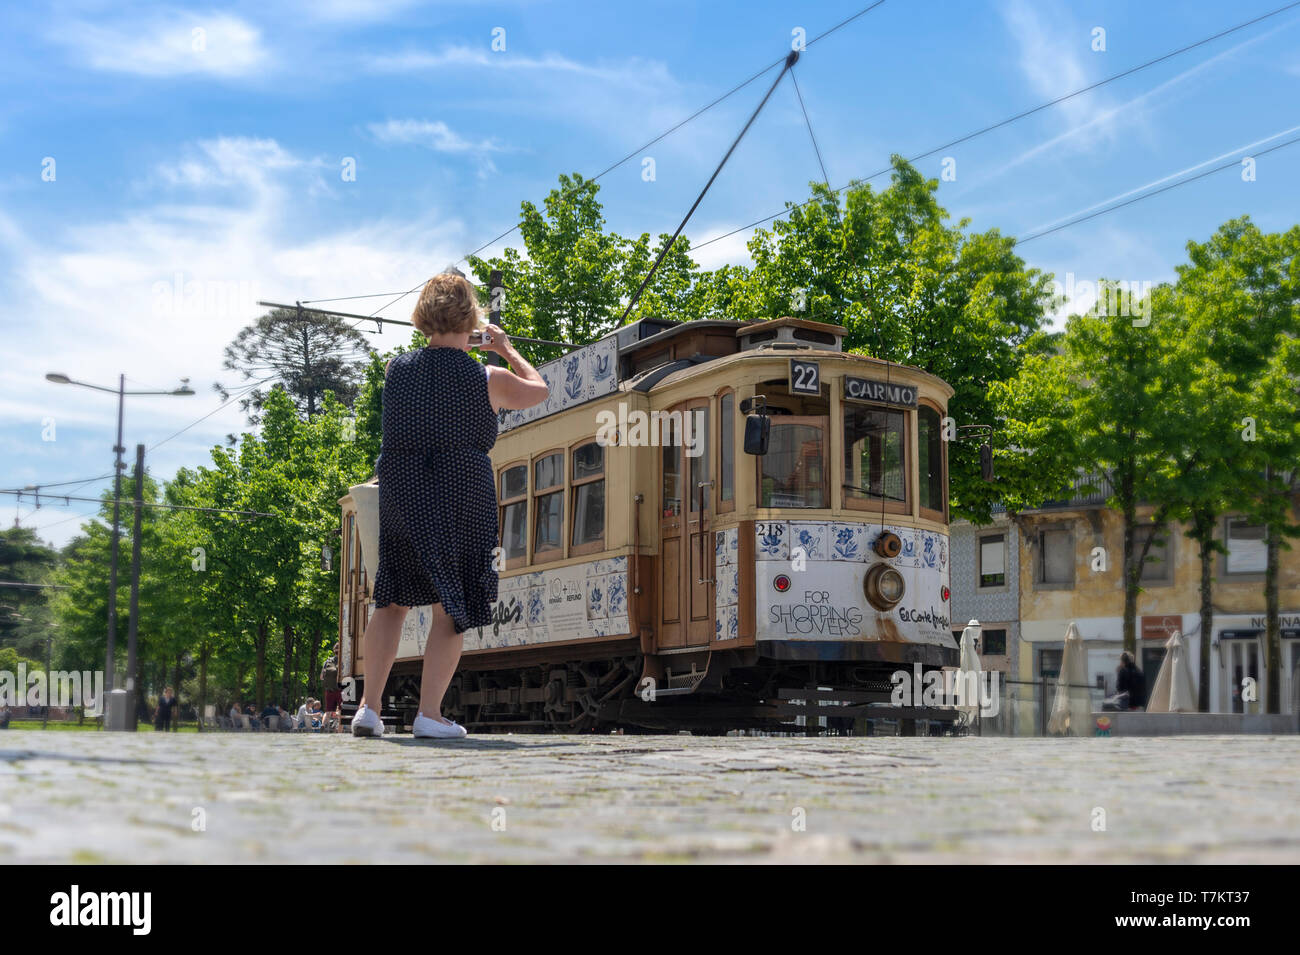 Traditional electric tram in downtown Porto, Portugal with a tourist taking a photograph. Stock Photo